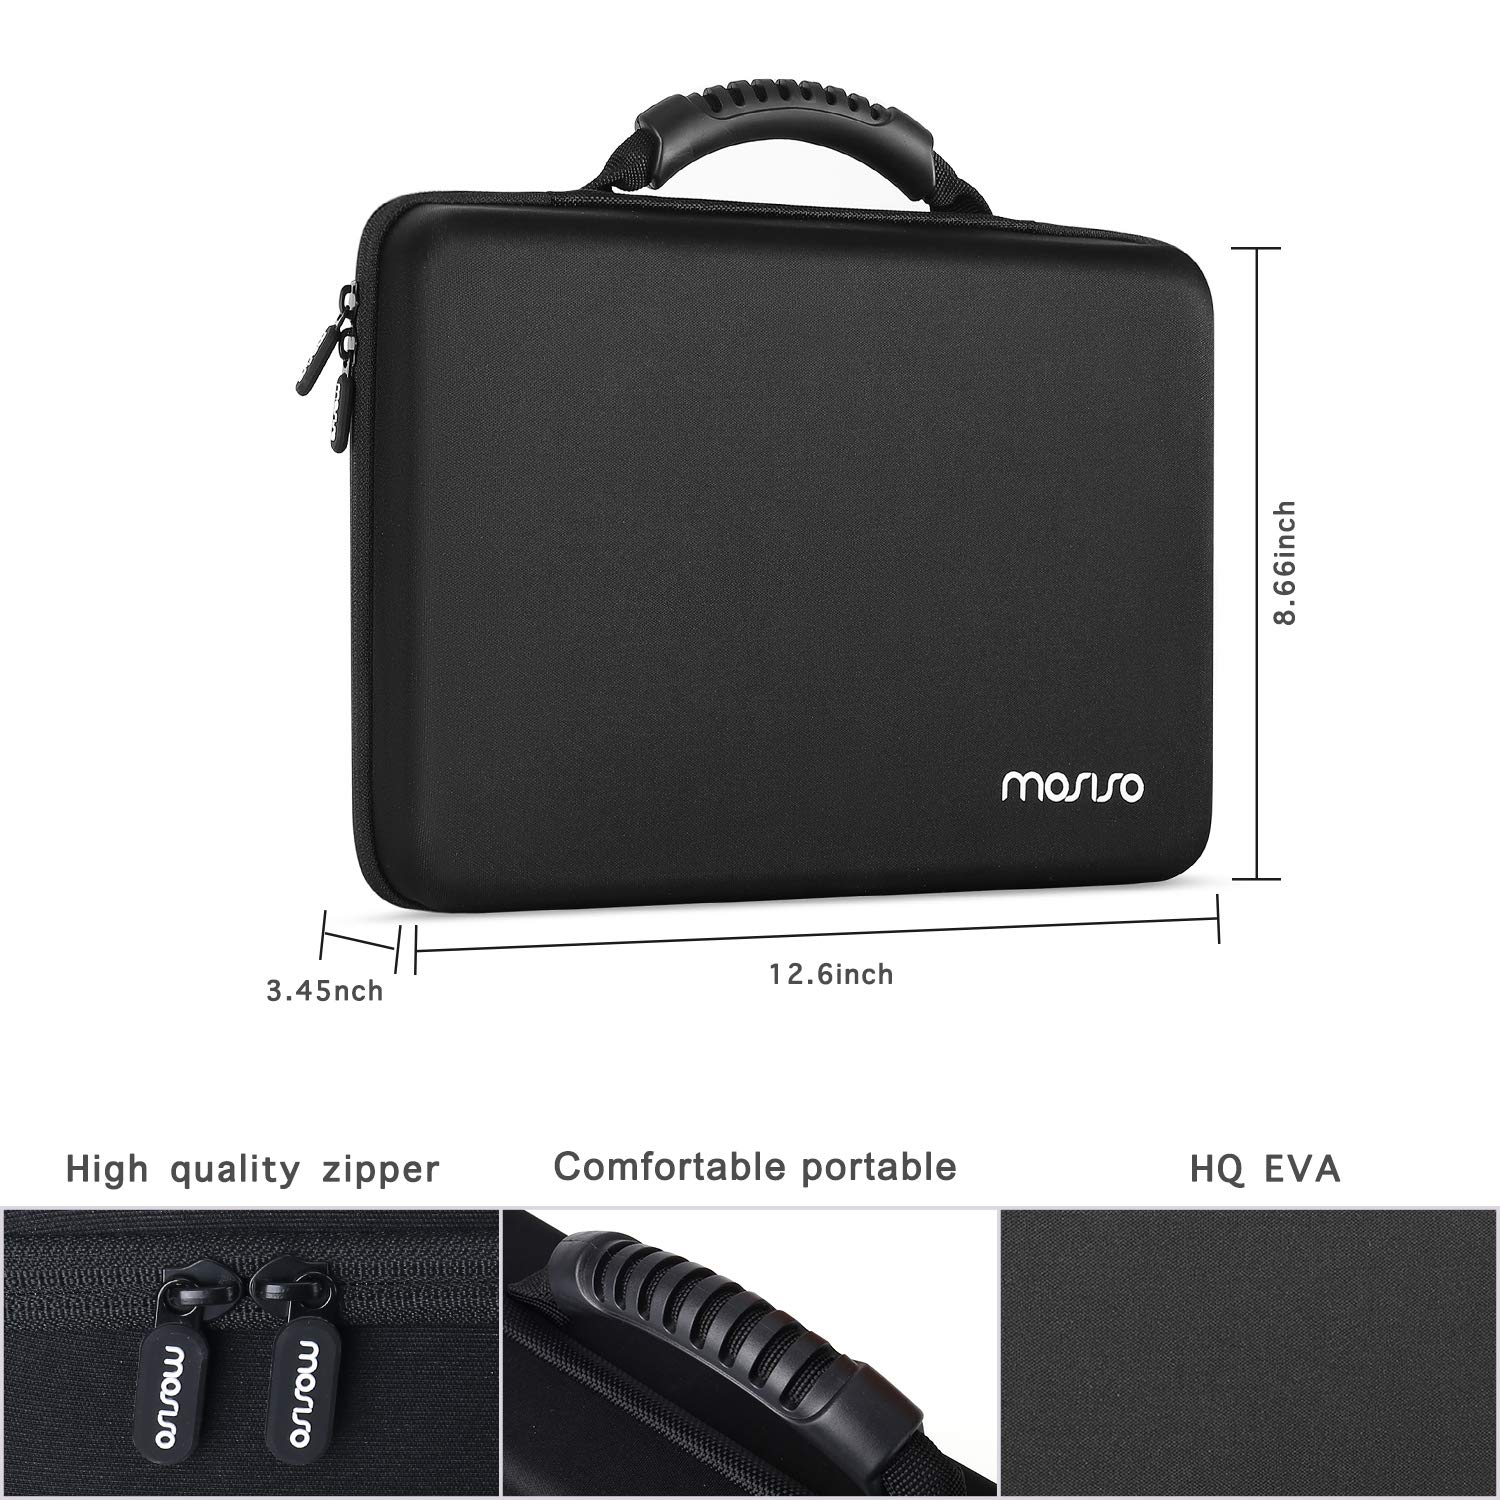 Hard EVA 140 Batteries Container Holder Carrying Case Bag for AA AAAA C D 9V 3V Lithium Button Cell with Battery Tester BT-168 Batteries Not Included Black MOSISO Battery Organizer Storage Box